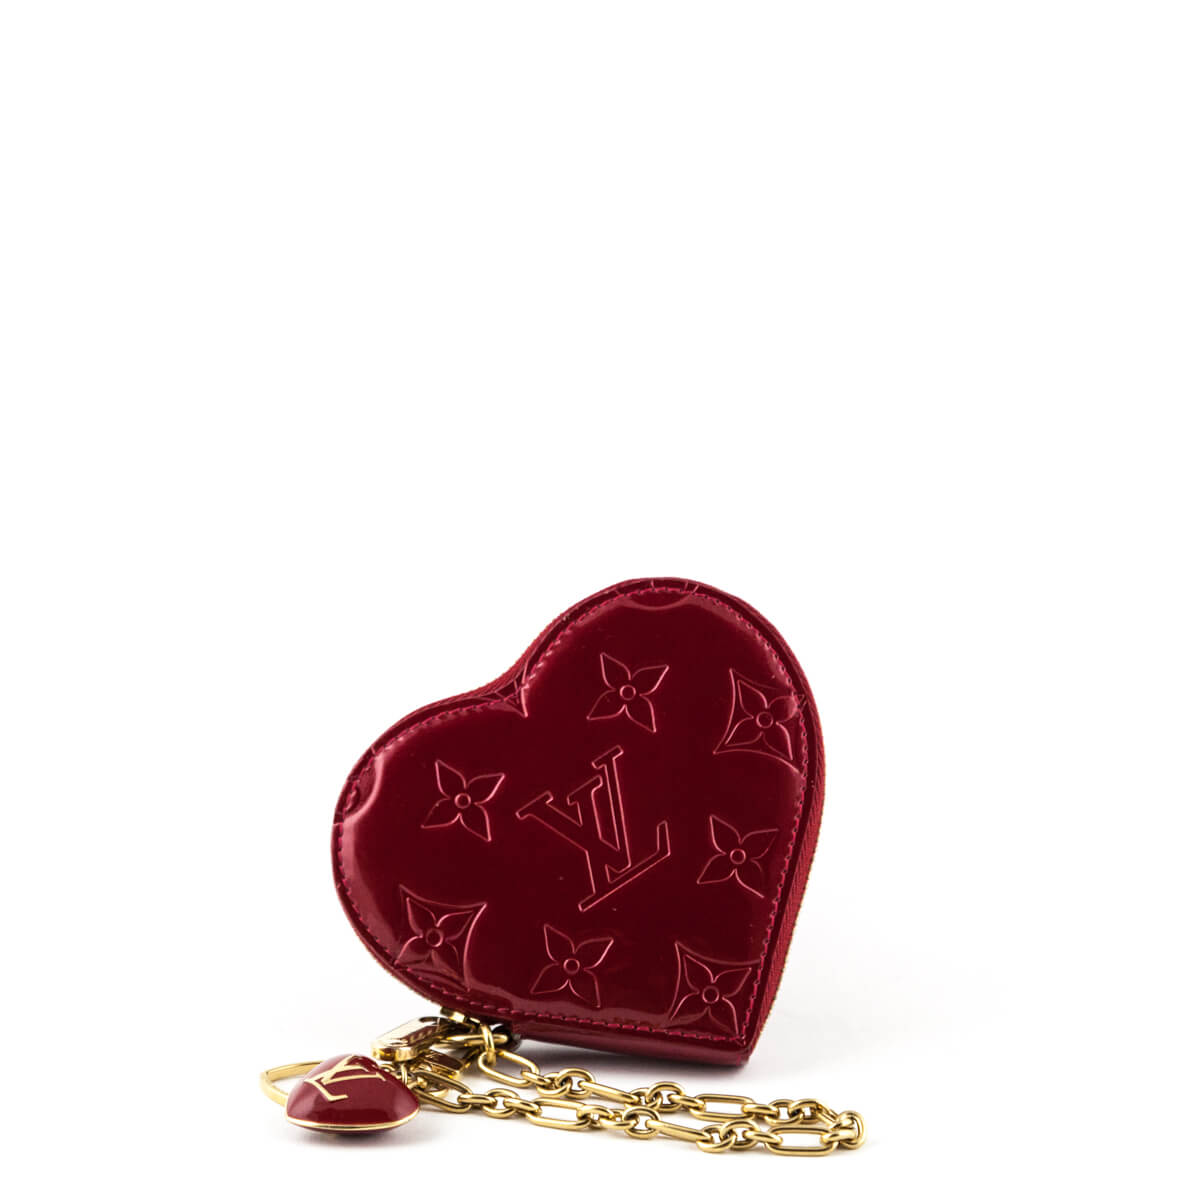 f64336626 Louis Vuitton Pomme d'Amour Empreinte Vernis Heart Coin Purse - LOVE that  BAG ...